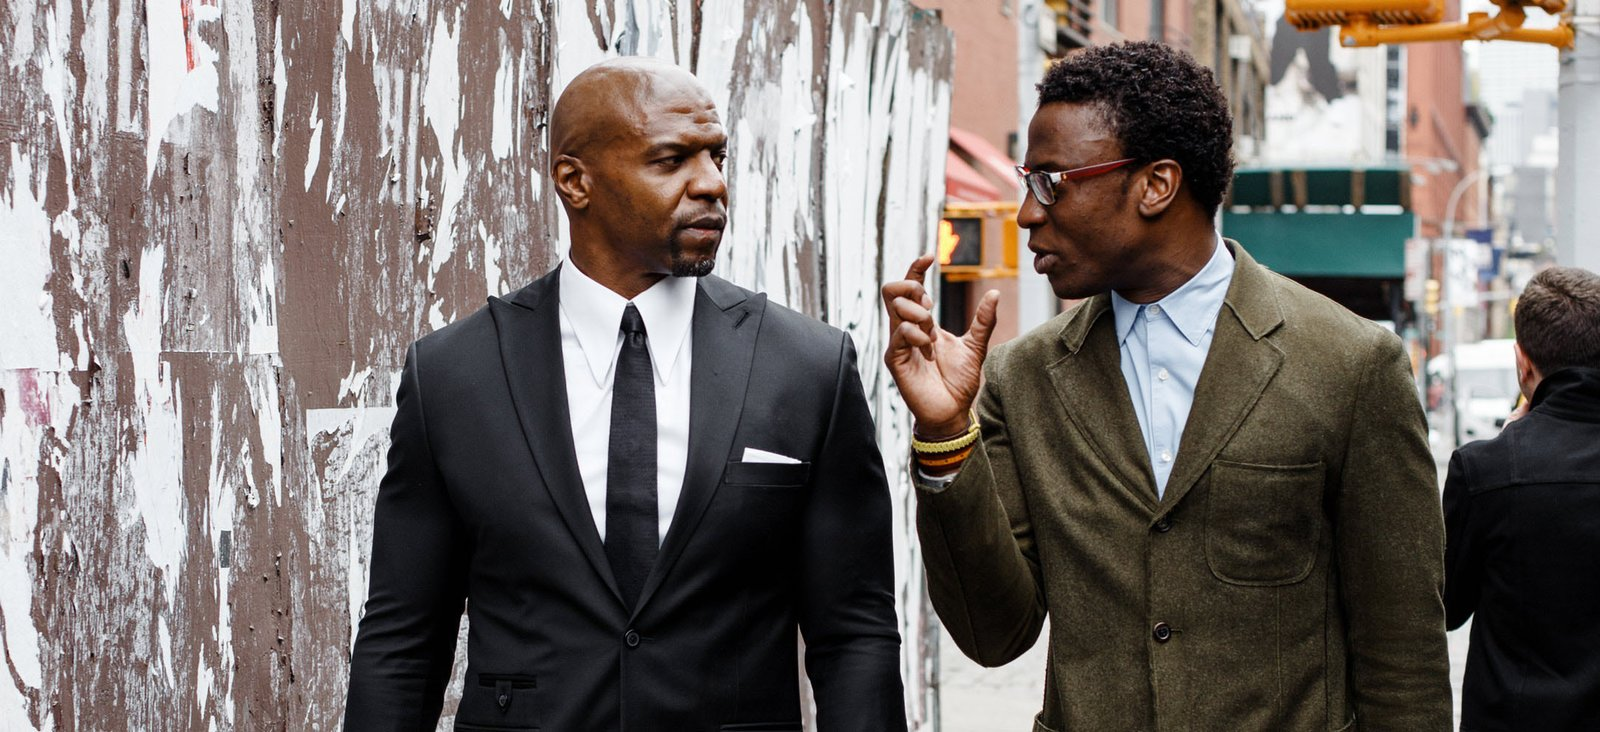 Photo 1 of 5 in Designer Ini Archibong Finds A Patron in Actor Terry Crews